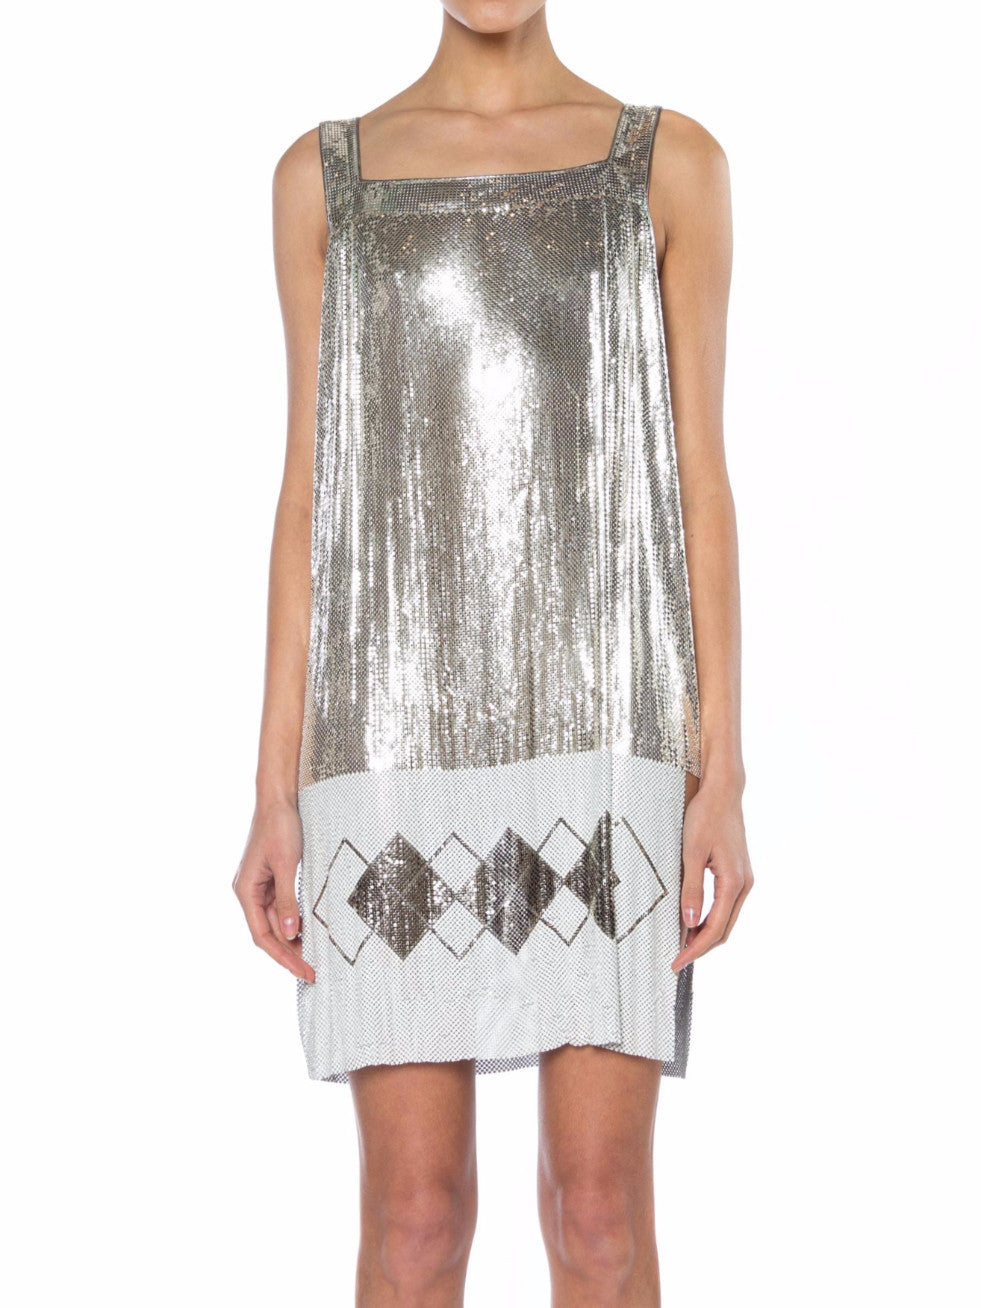 Morphew Collection Silver & White Metal Mesh Deco Patterned  Cocktail Dress With Side Slits Made From Vintage Whiting Davis